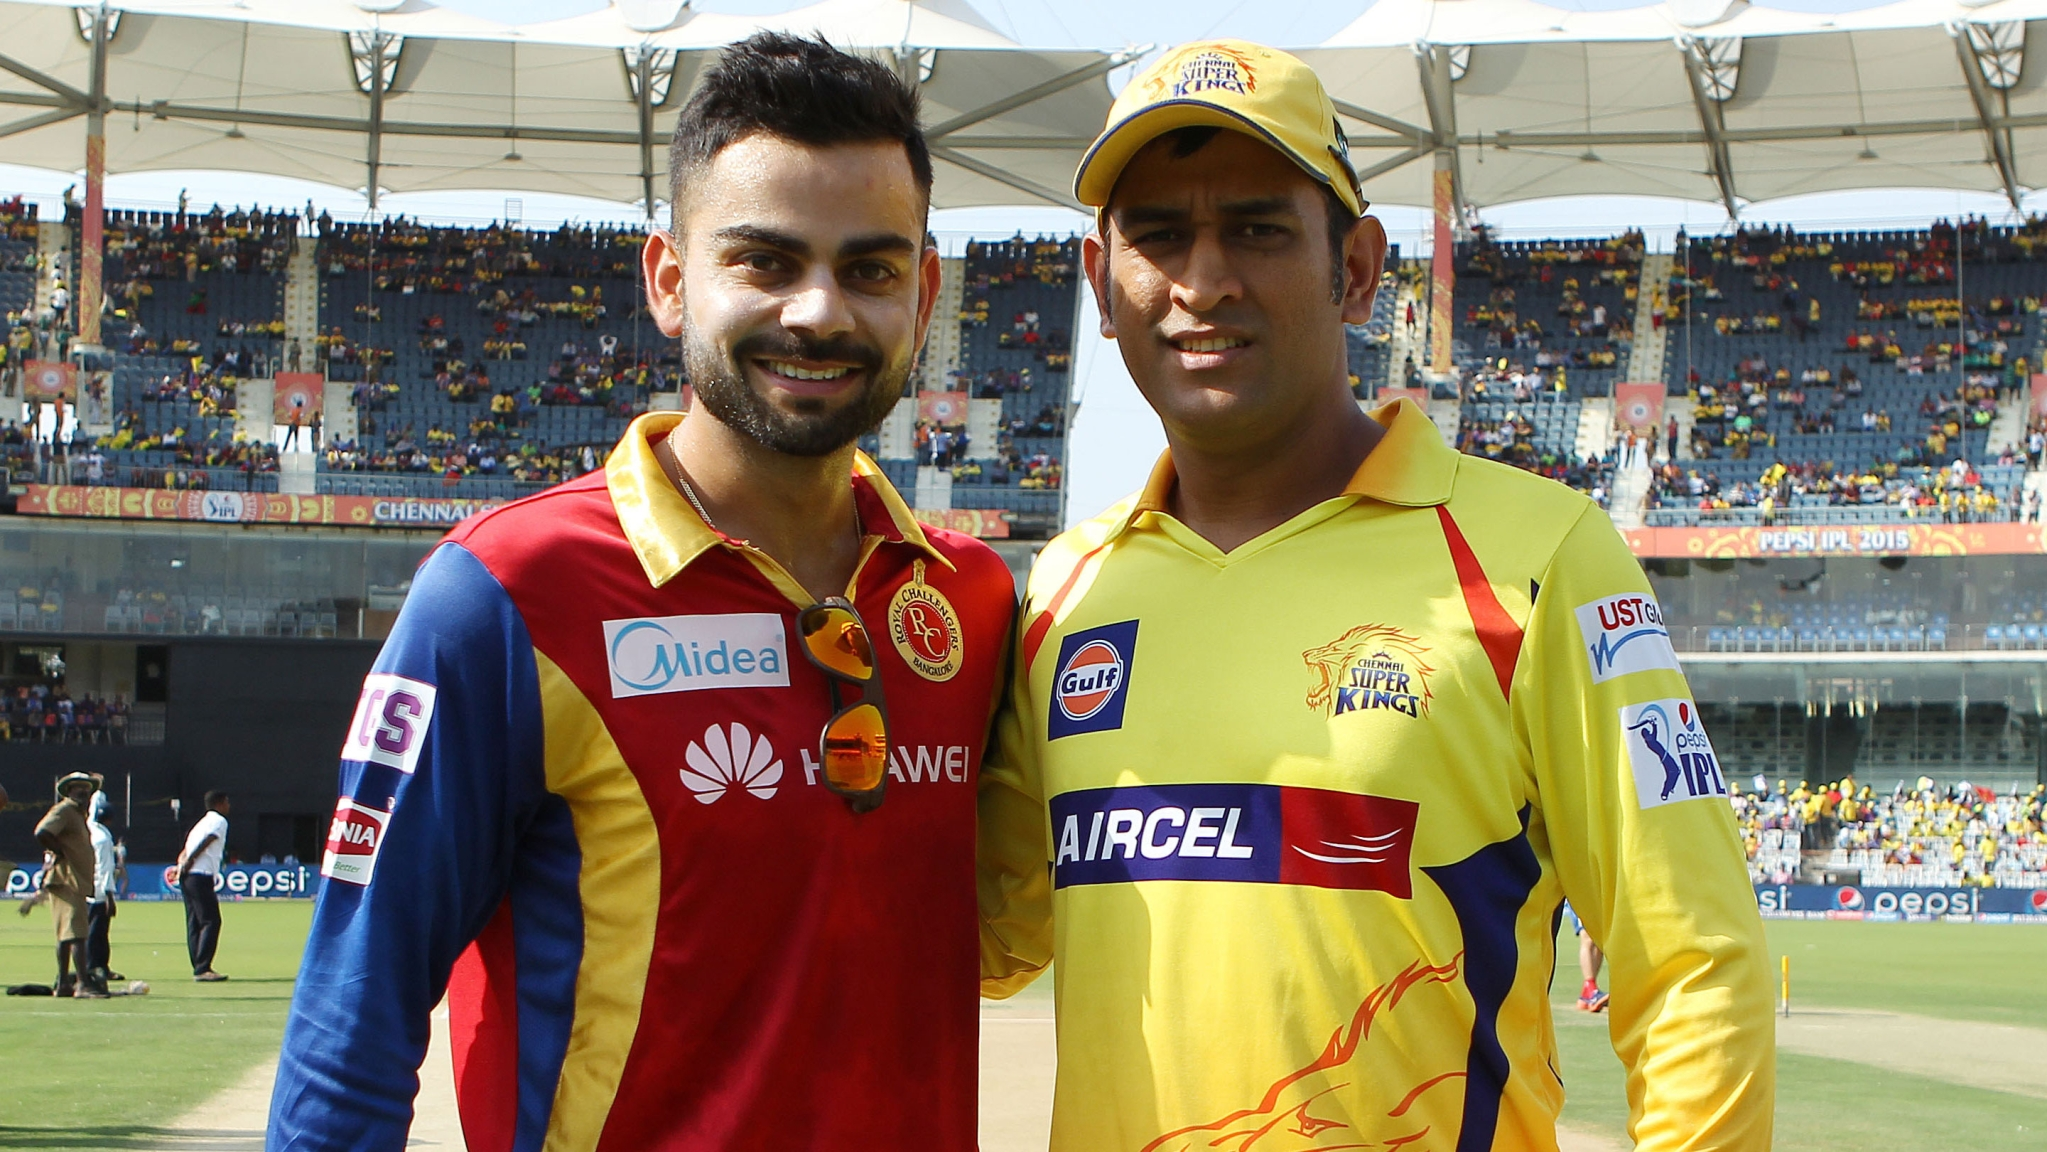 IPL 2018: File photo of Virat Kohli and MS Dhoni